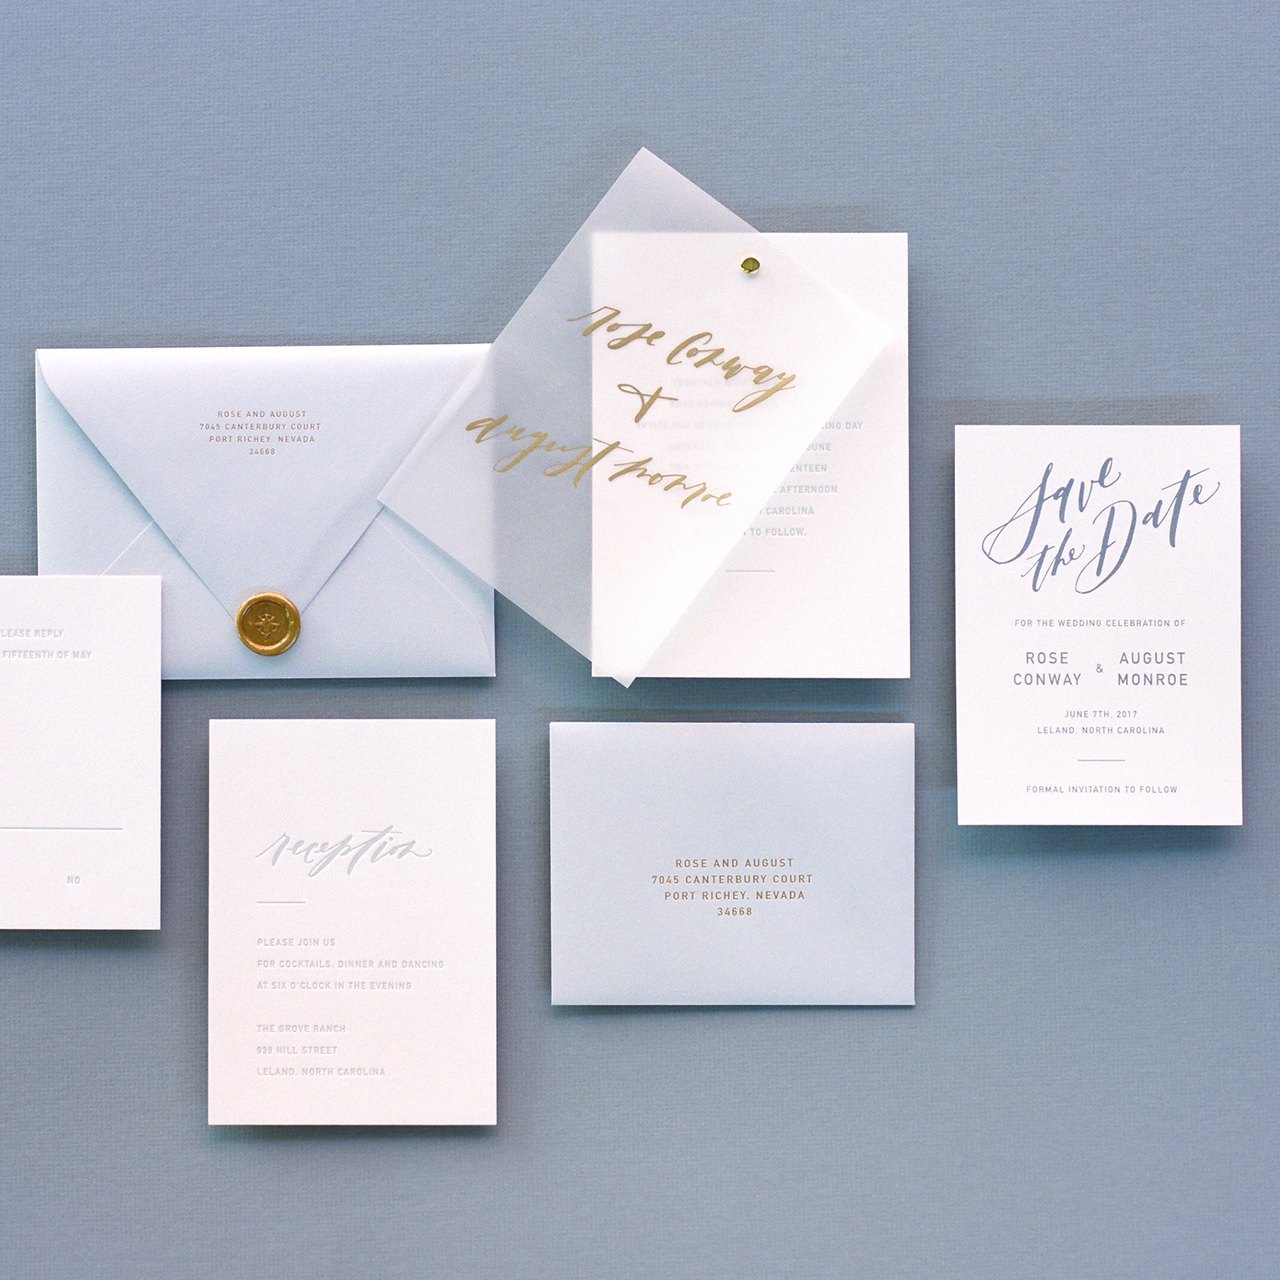 Vellum wedding invitations designs